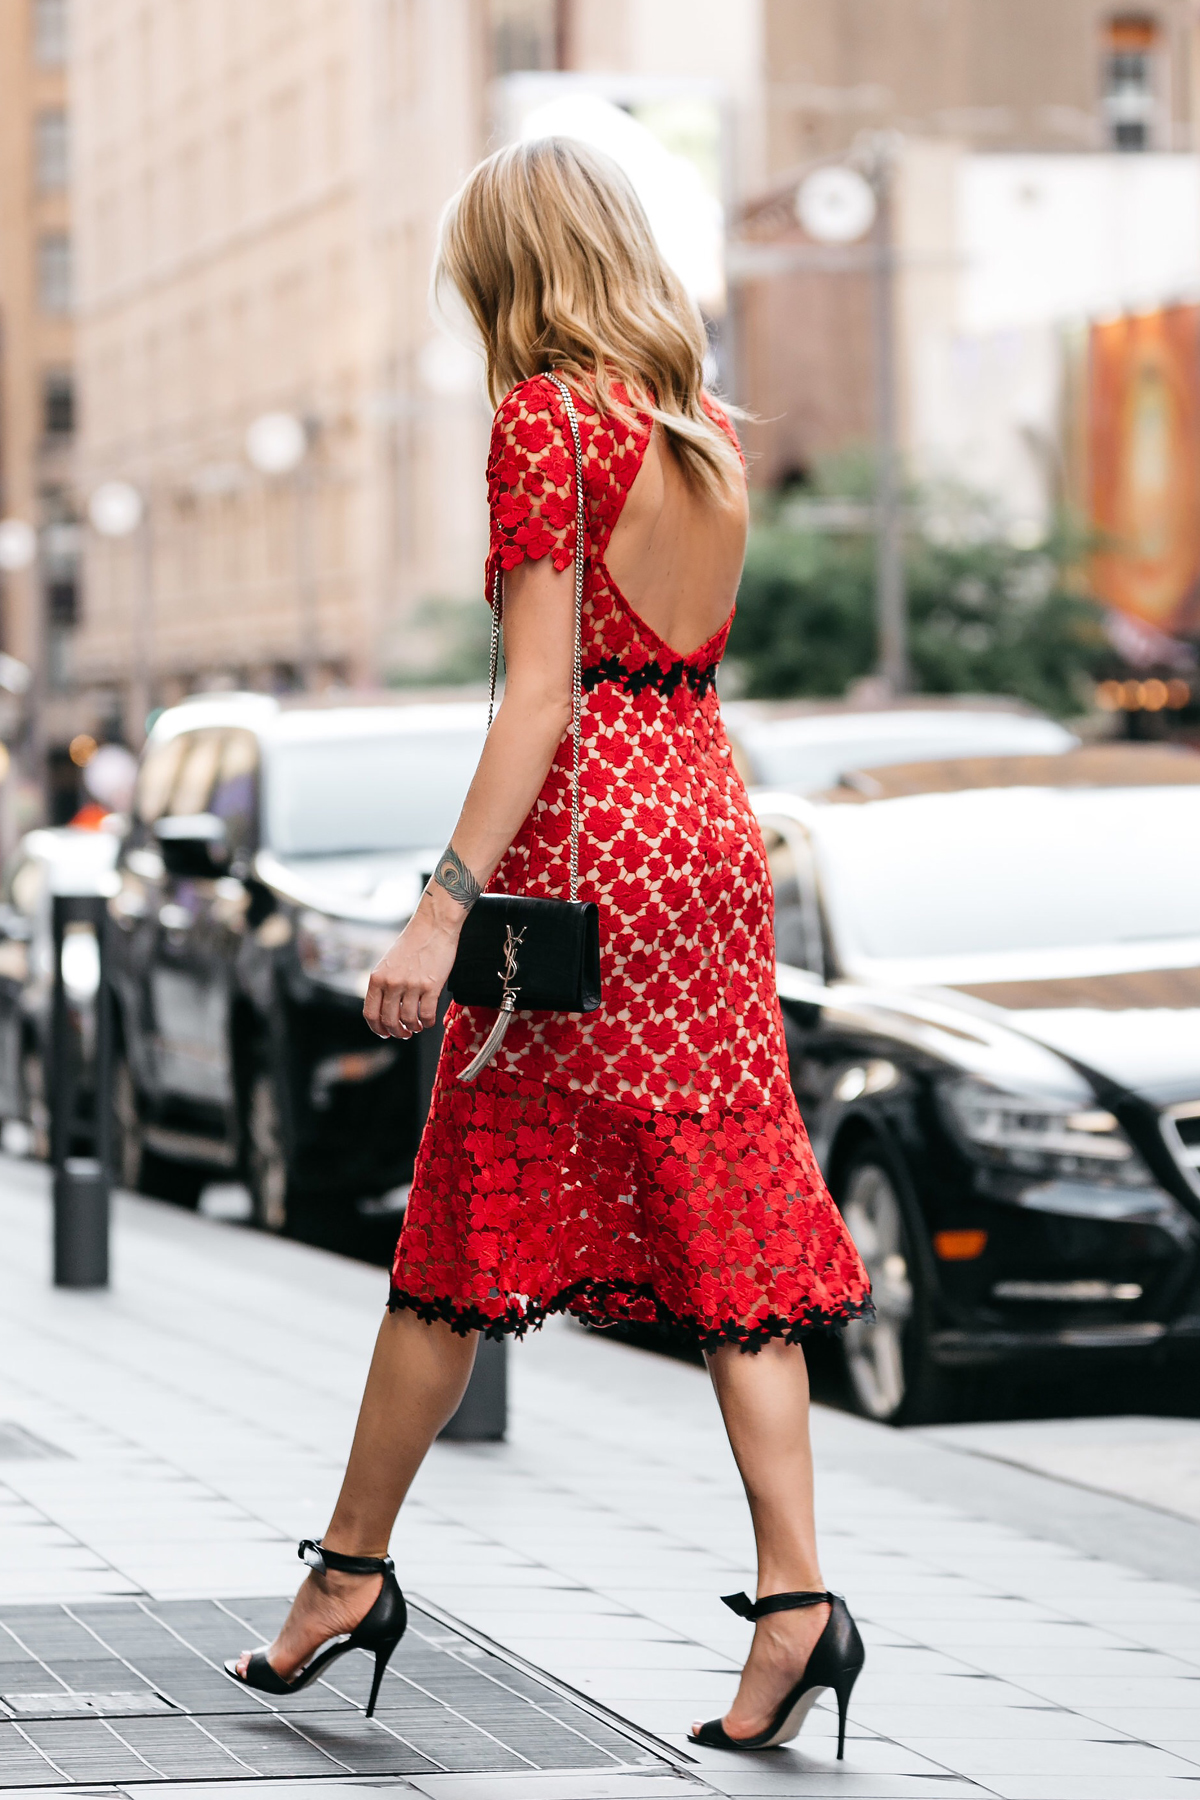 Fashion Jackson, Dallas Blogger, Fashion Blogger, Street Style, Jill Stuart Floral Red Lace Dress, Black Ankle Strap Bow Heels, Saint Laurent Monogram Handbag